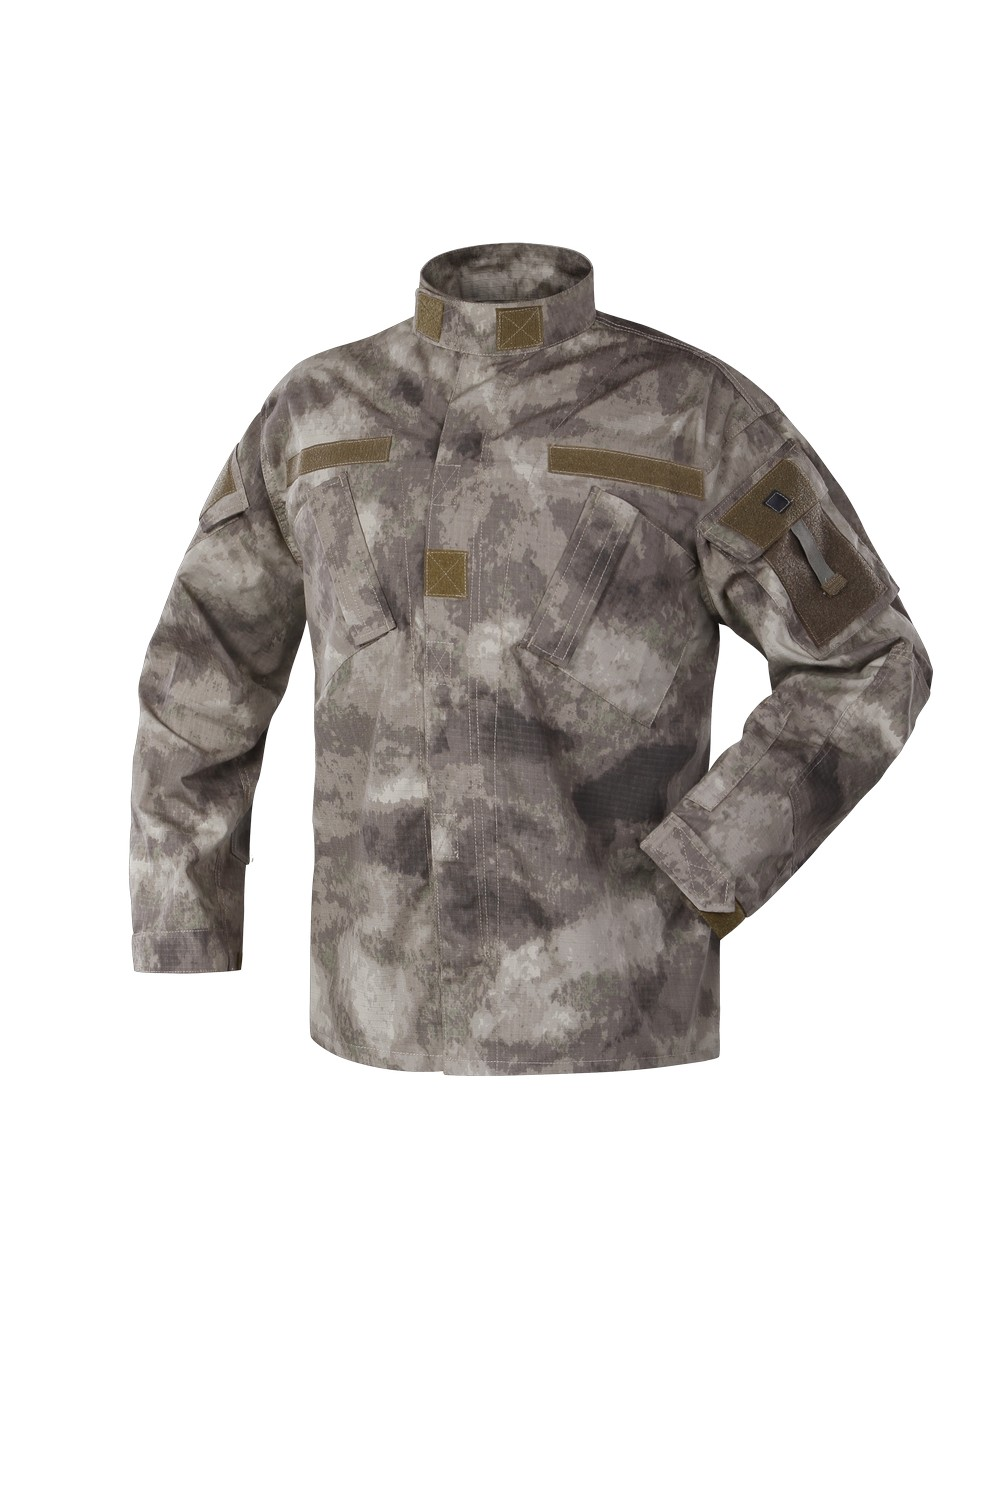 SHIRT ACU Mud-Cam, Mc Camo